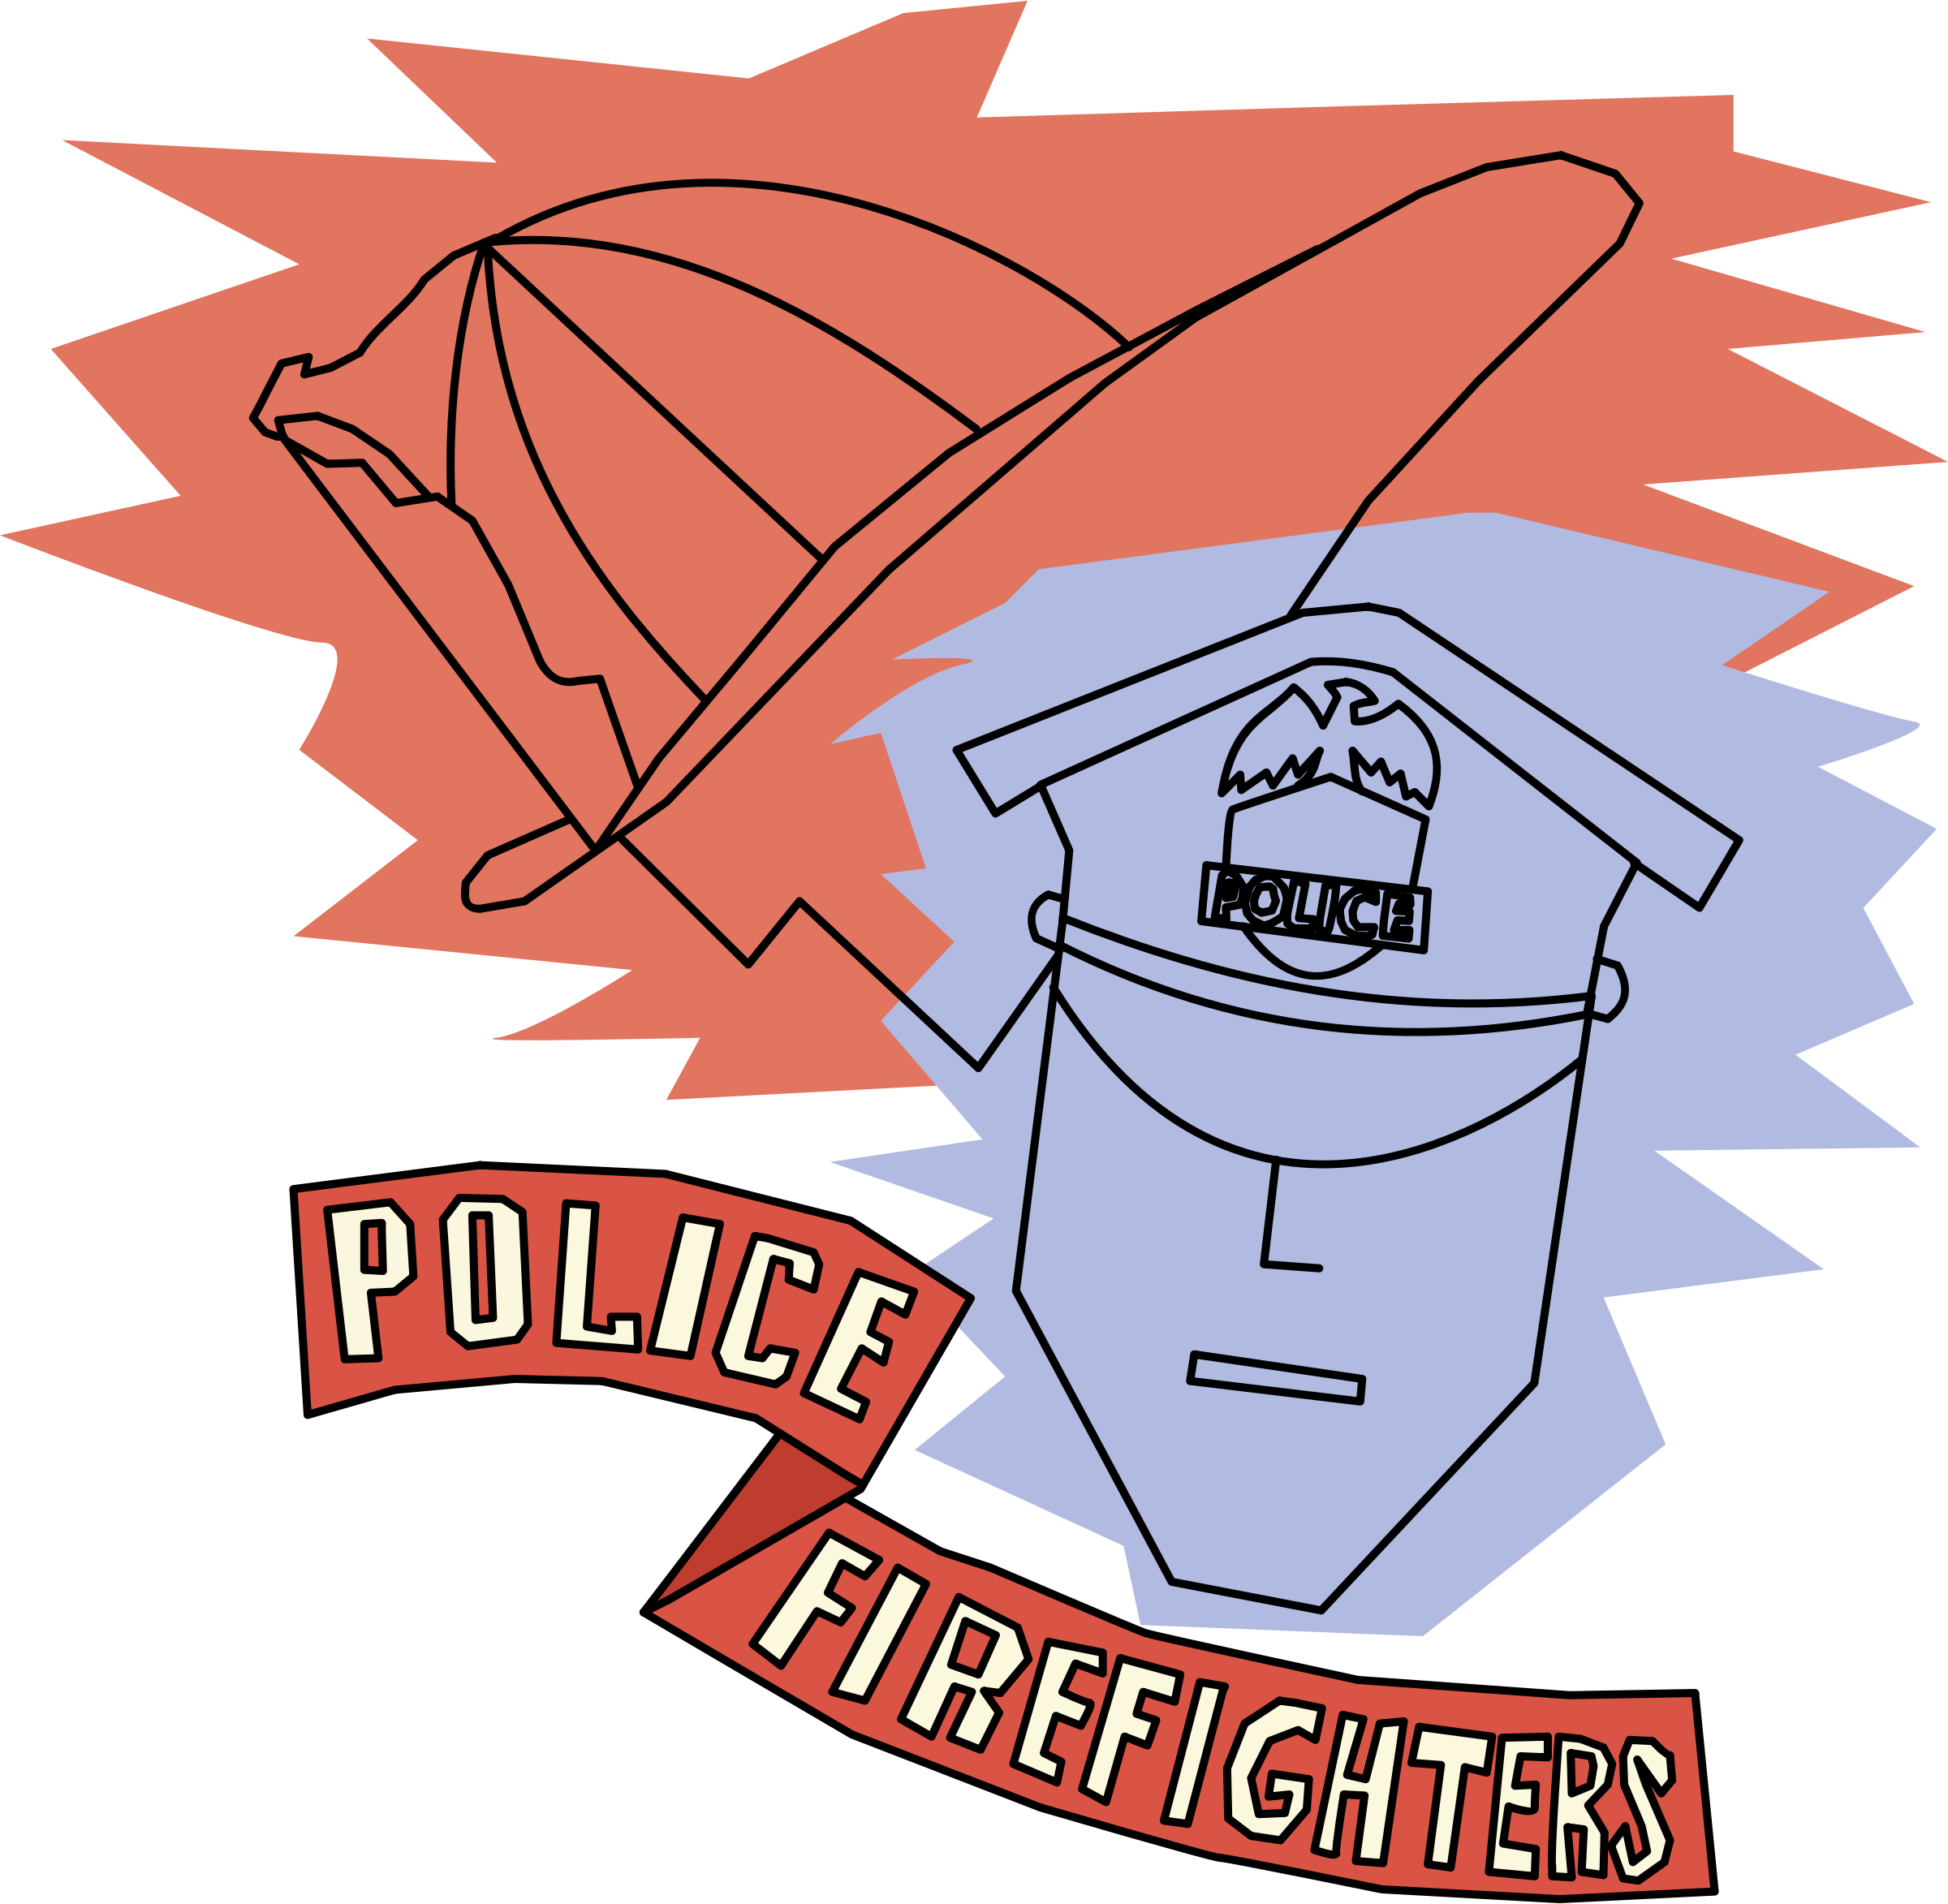 Police and firefighters big. Policeman clipart plice